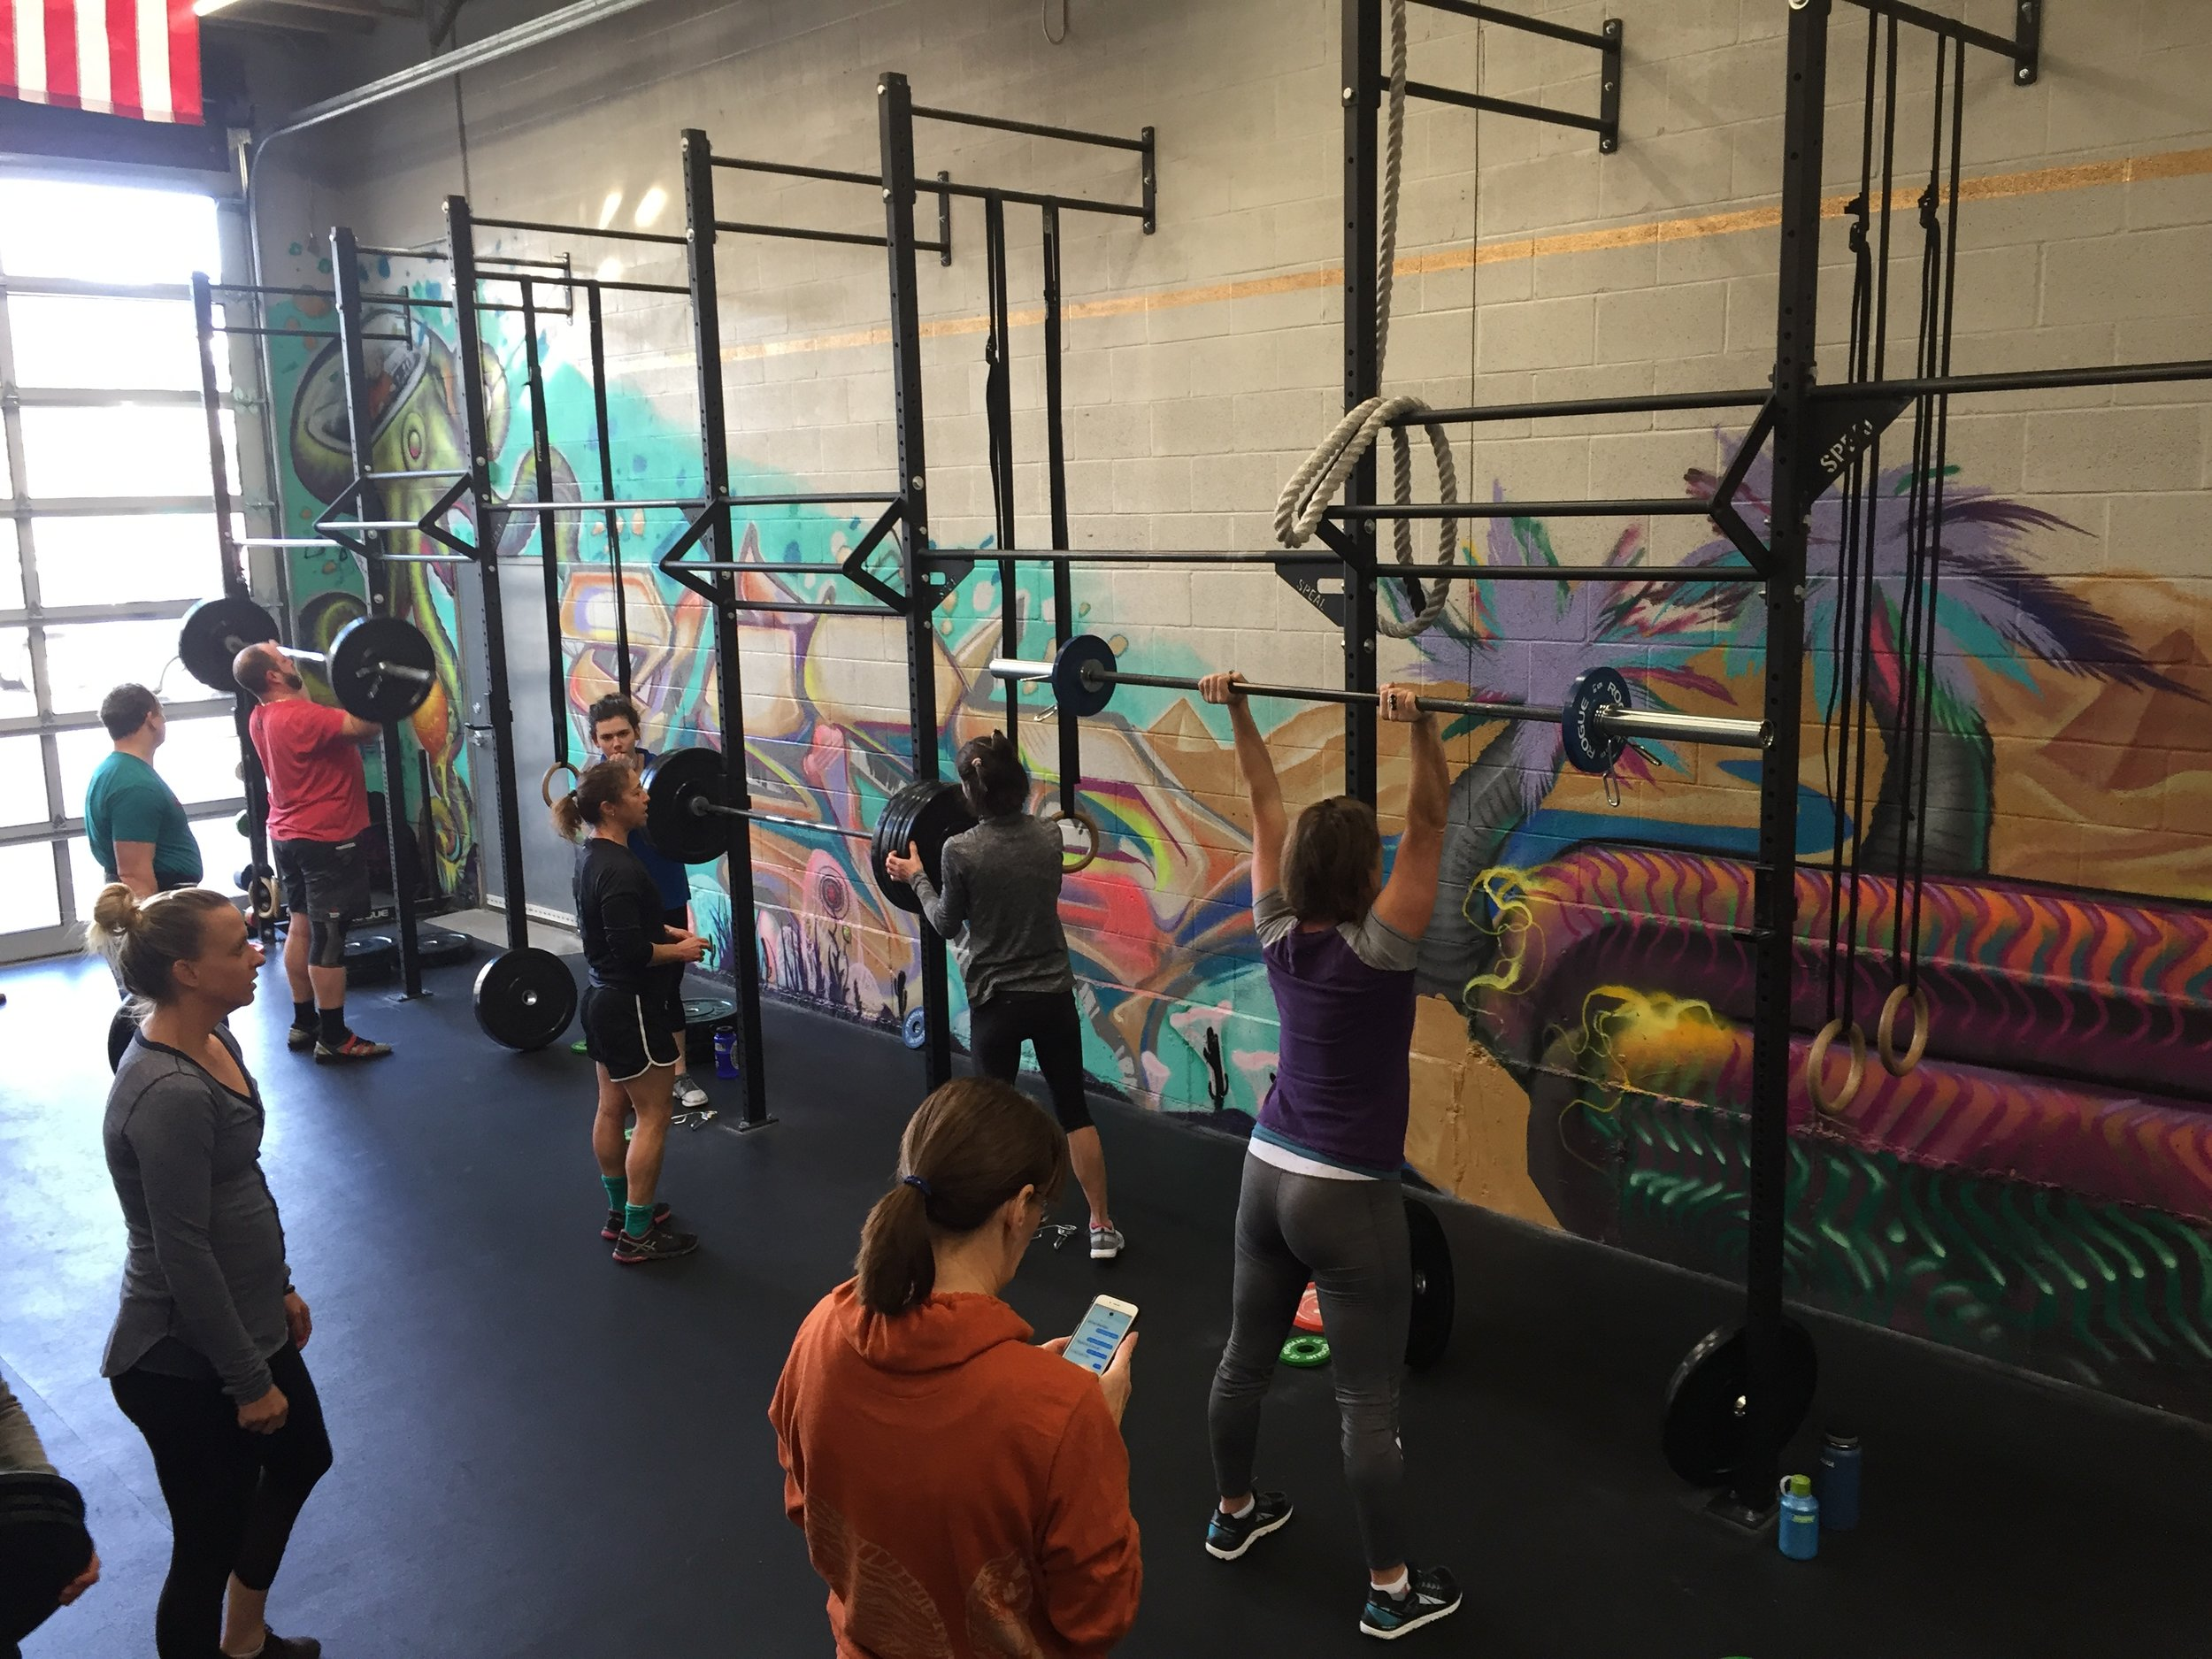 New open gym hours and last call for wlc — crossfit catacombs